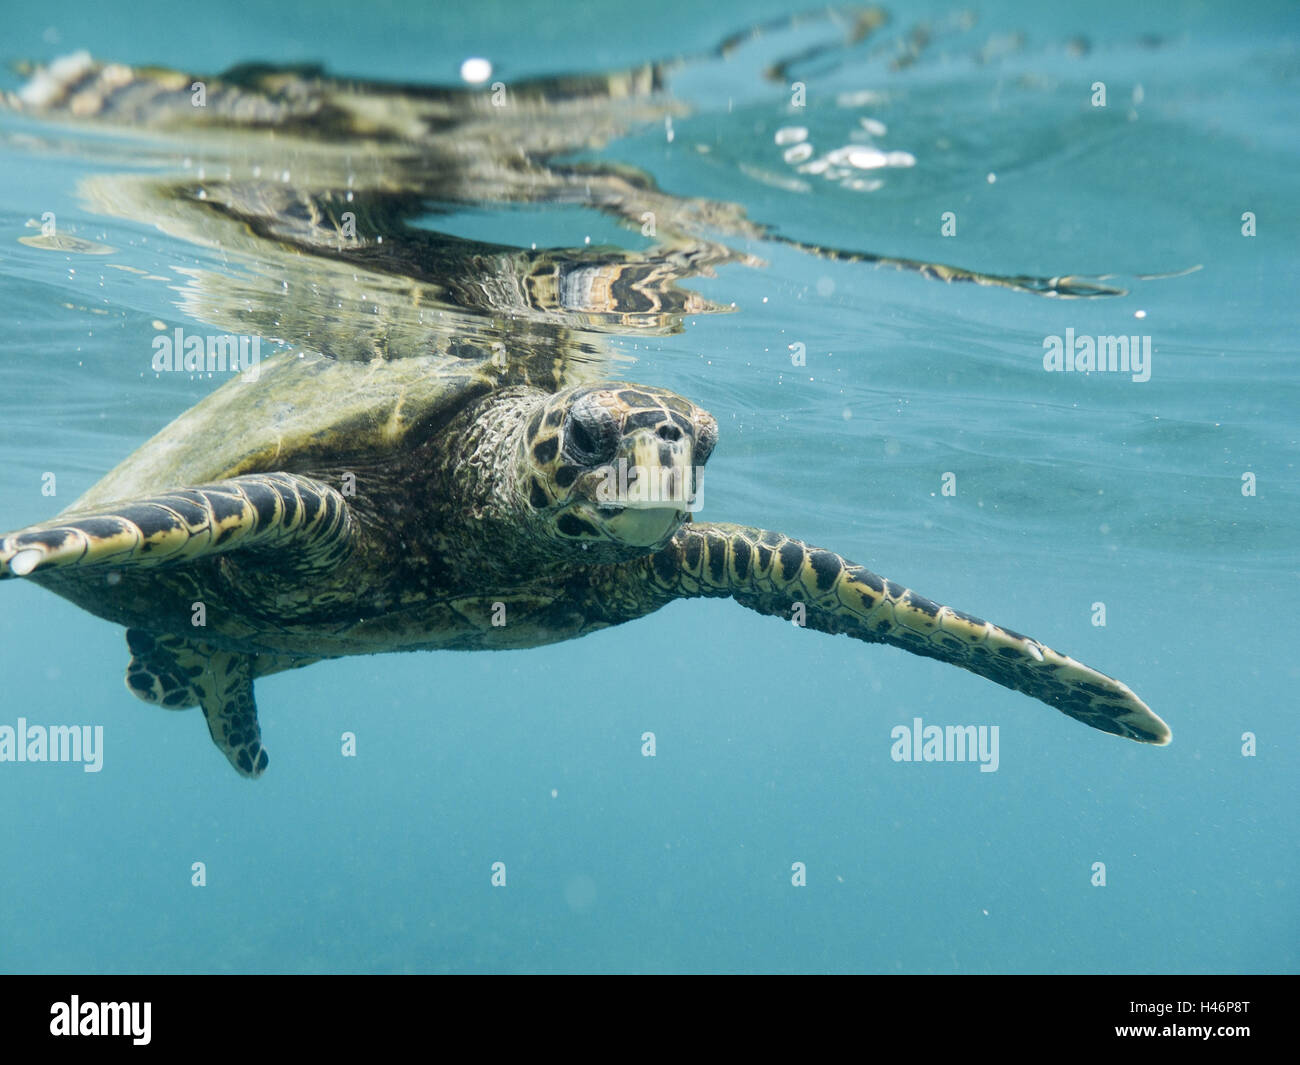 Hawksbill sea turtle, Eretmochelys imbricata bissa, underwater shot with reflection in the water surface, - Stock Image